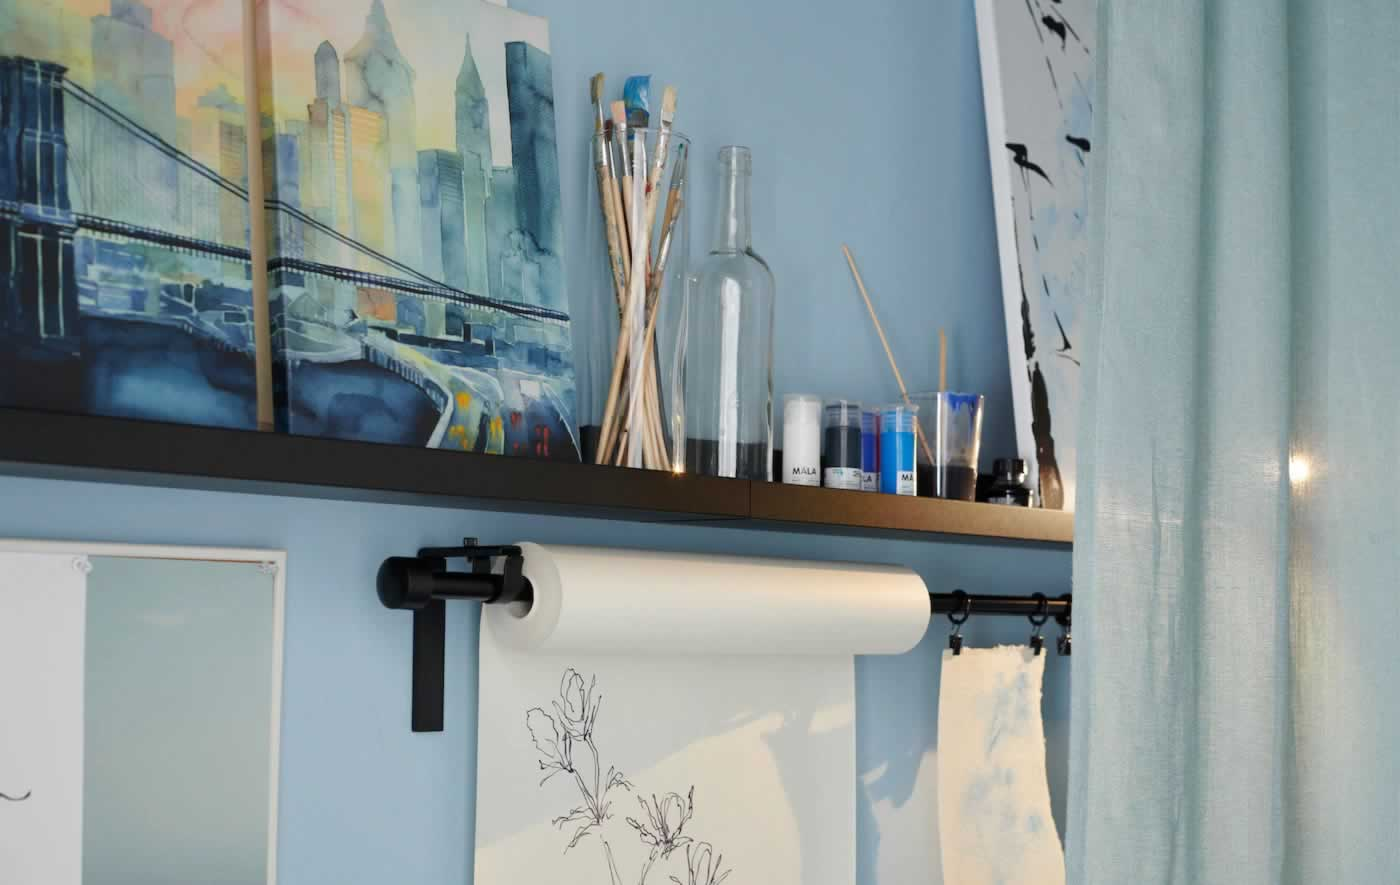 IKEA Ideas - Create an on/off hobby wall